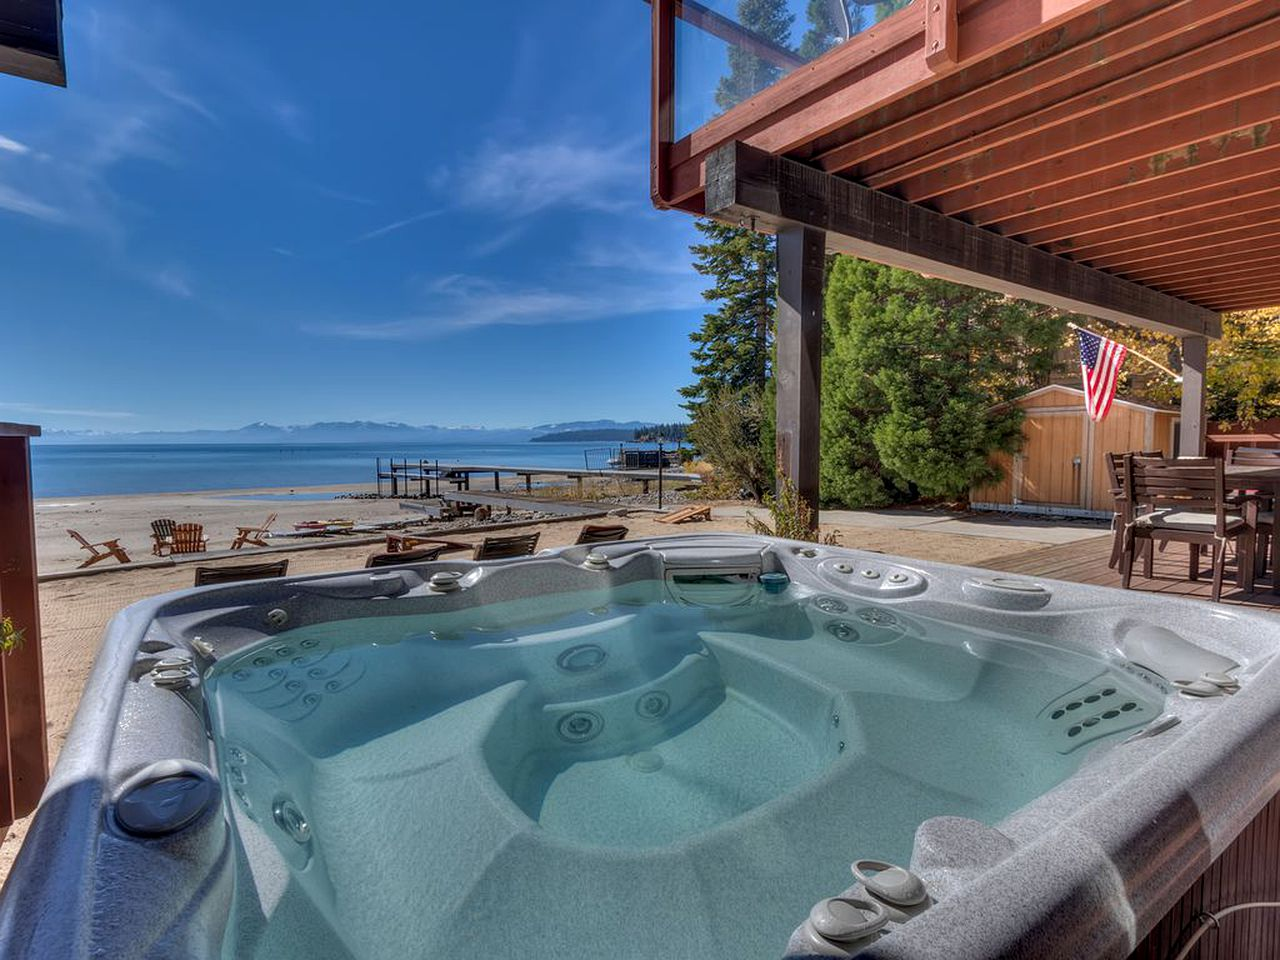 Cabins (Tahoe Vista, California, United States)